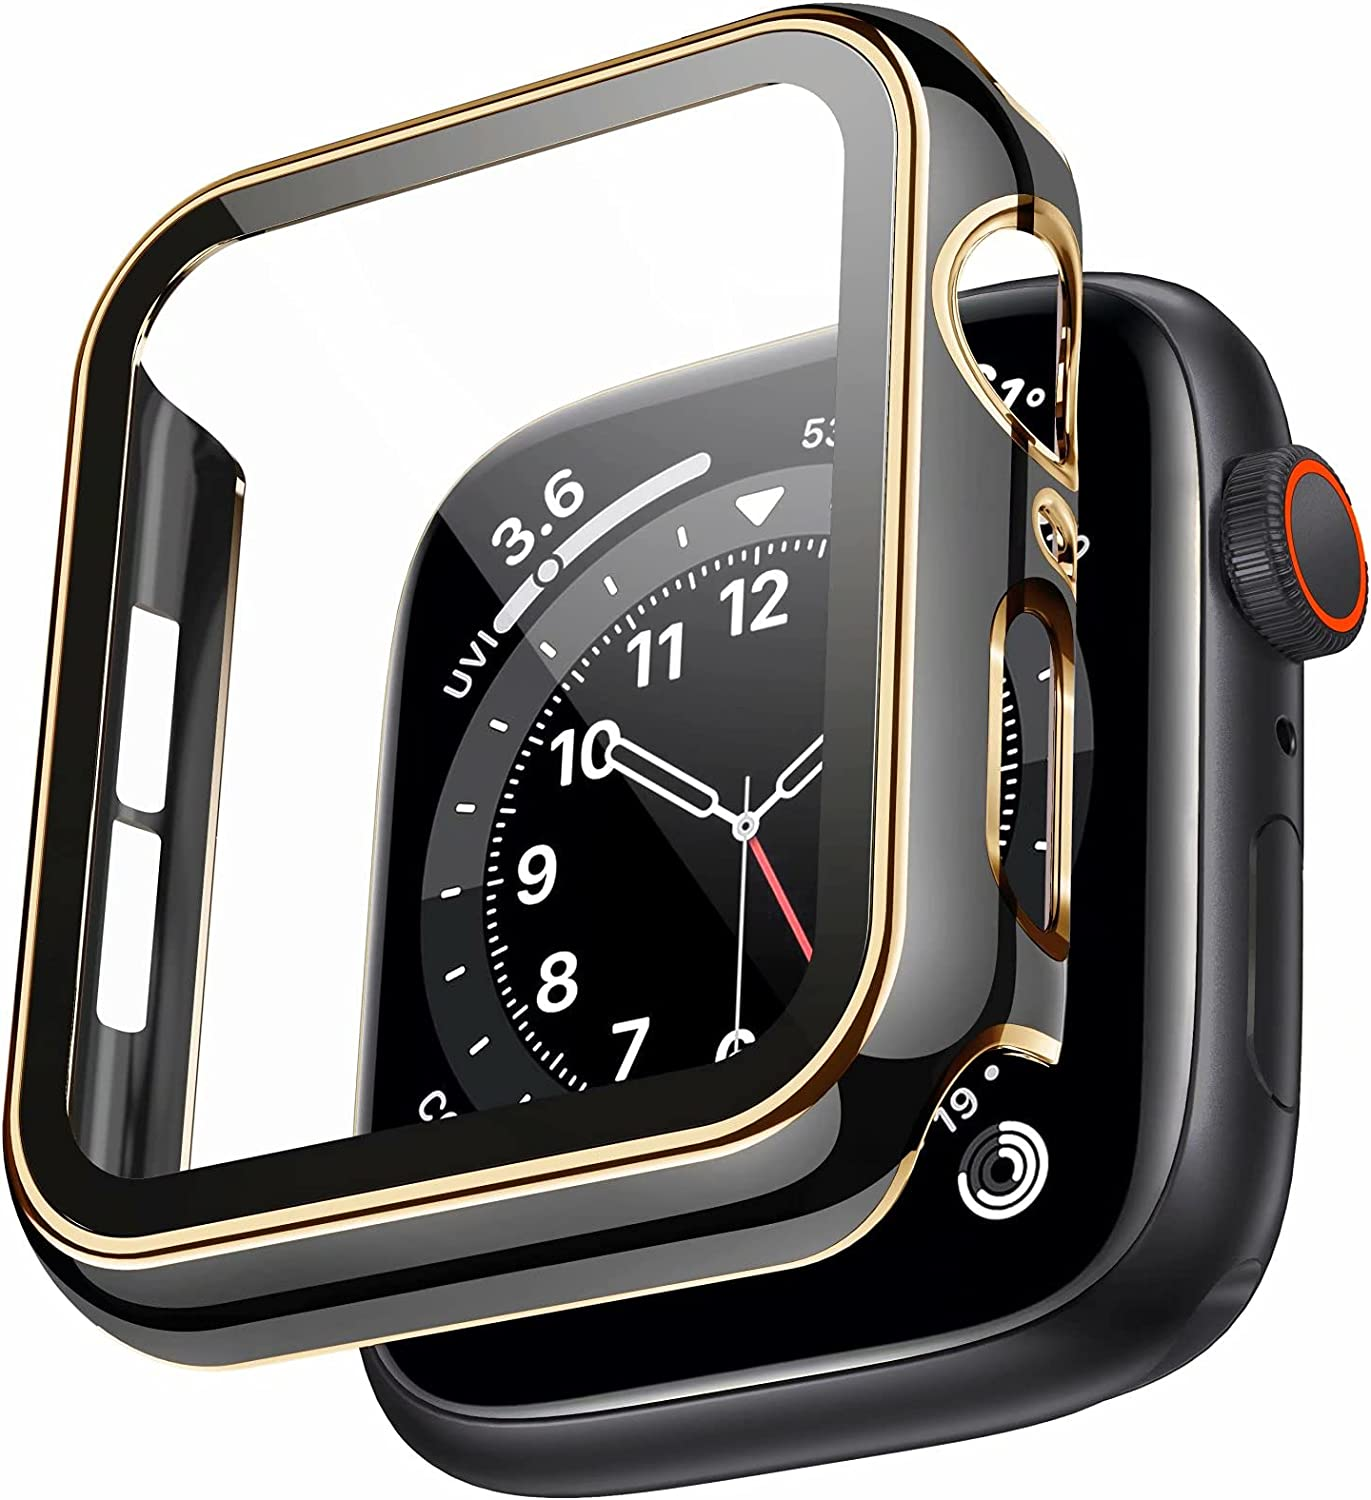 Swhatty Case Compatible with Apple Watch 44mm 40mm 42mm 38mm, Bumper Built in Tempered Glass Screen Protector, Protective Cover for iWatch Series SE 6 5 4 3 2 1 Women Men (Light Gold Edge Black, 42mm)